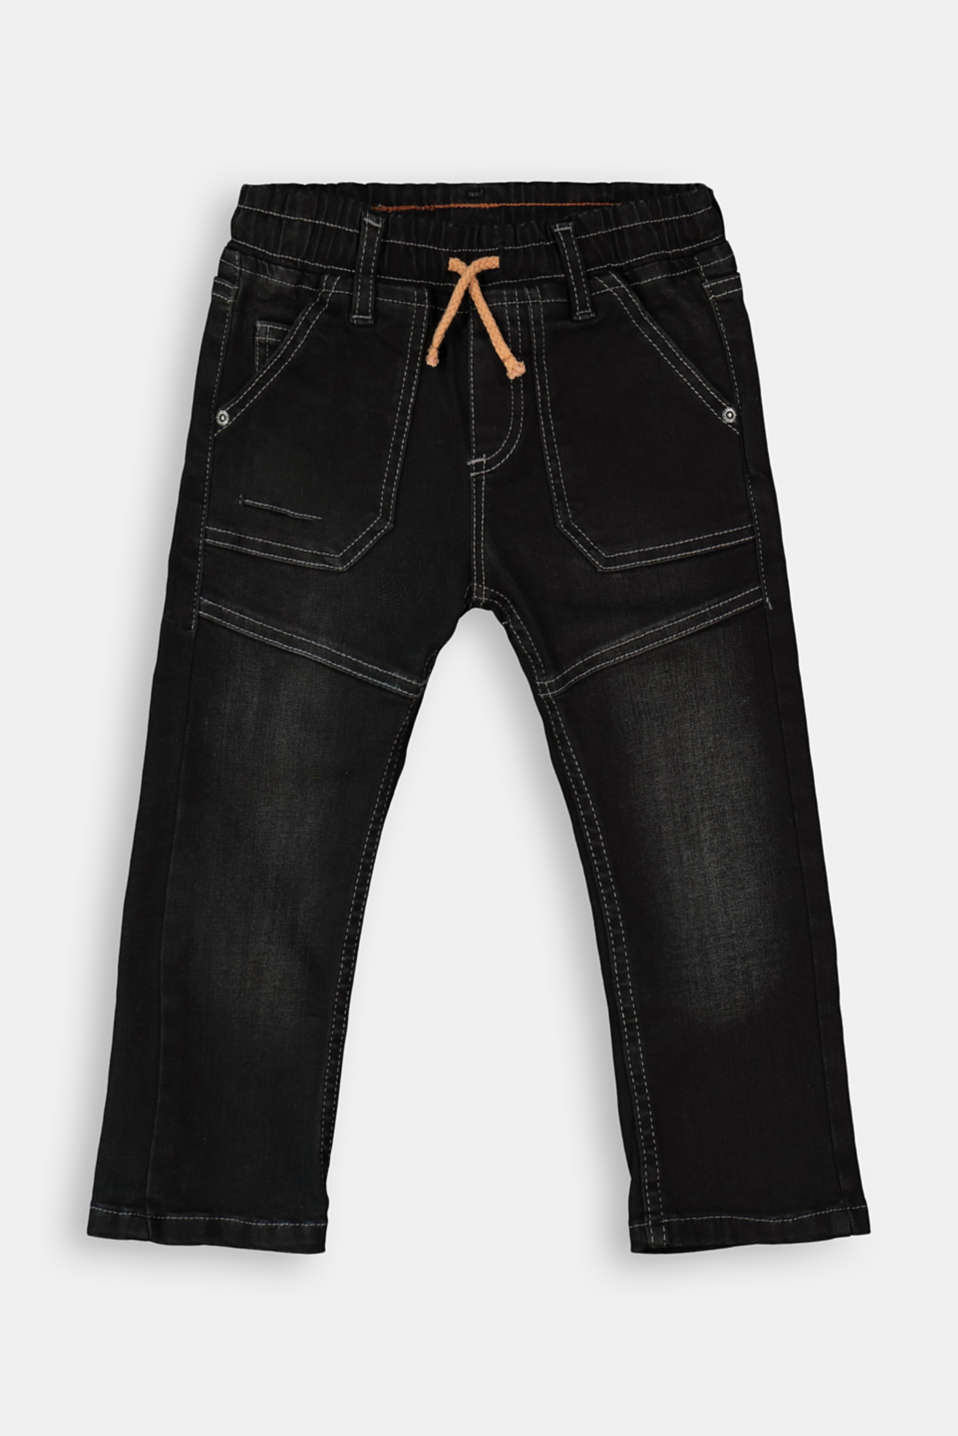 Esprit - Pull-on jeans in a worker look